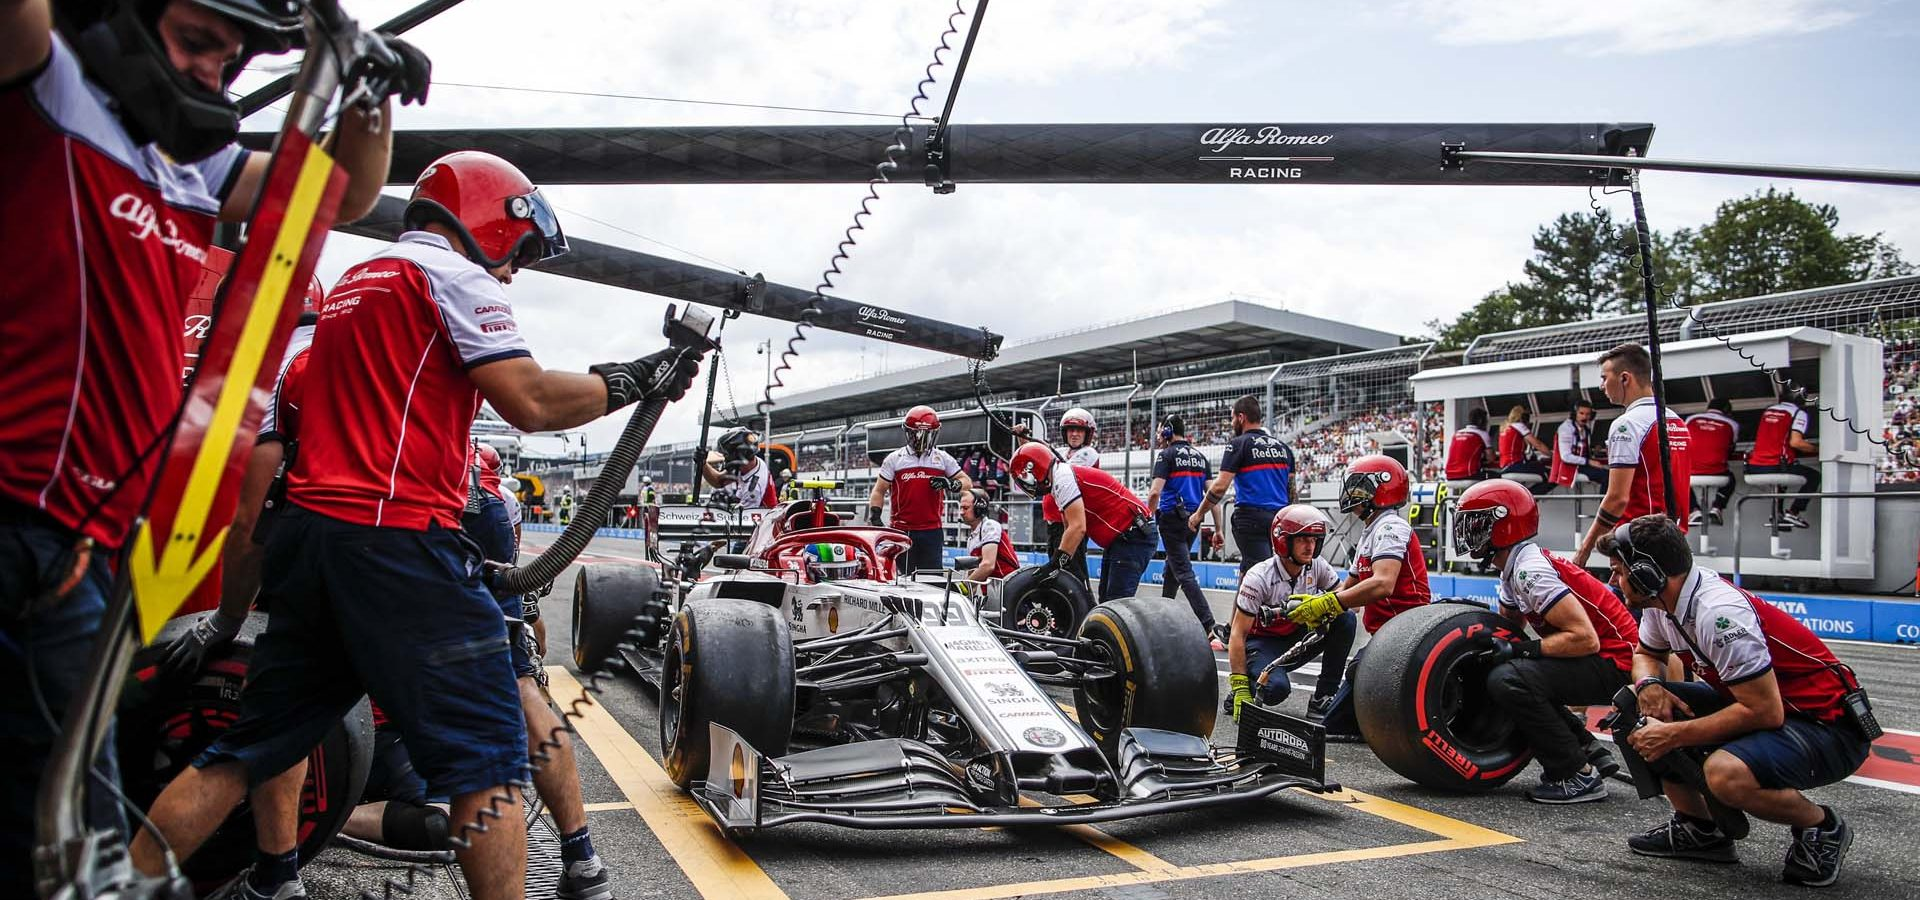 GIOVINAZZI Antonio (ita), Alfa Romeo Racing C38, action pitstop practice, during the 2019 Formula One World Championship, Germany Grand Prix from July 25 to 28, in Hockenheim, Germany - Photo Florent Gooden / DPPI